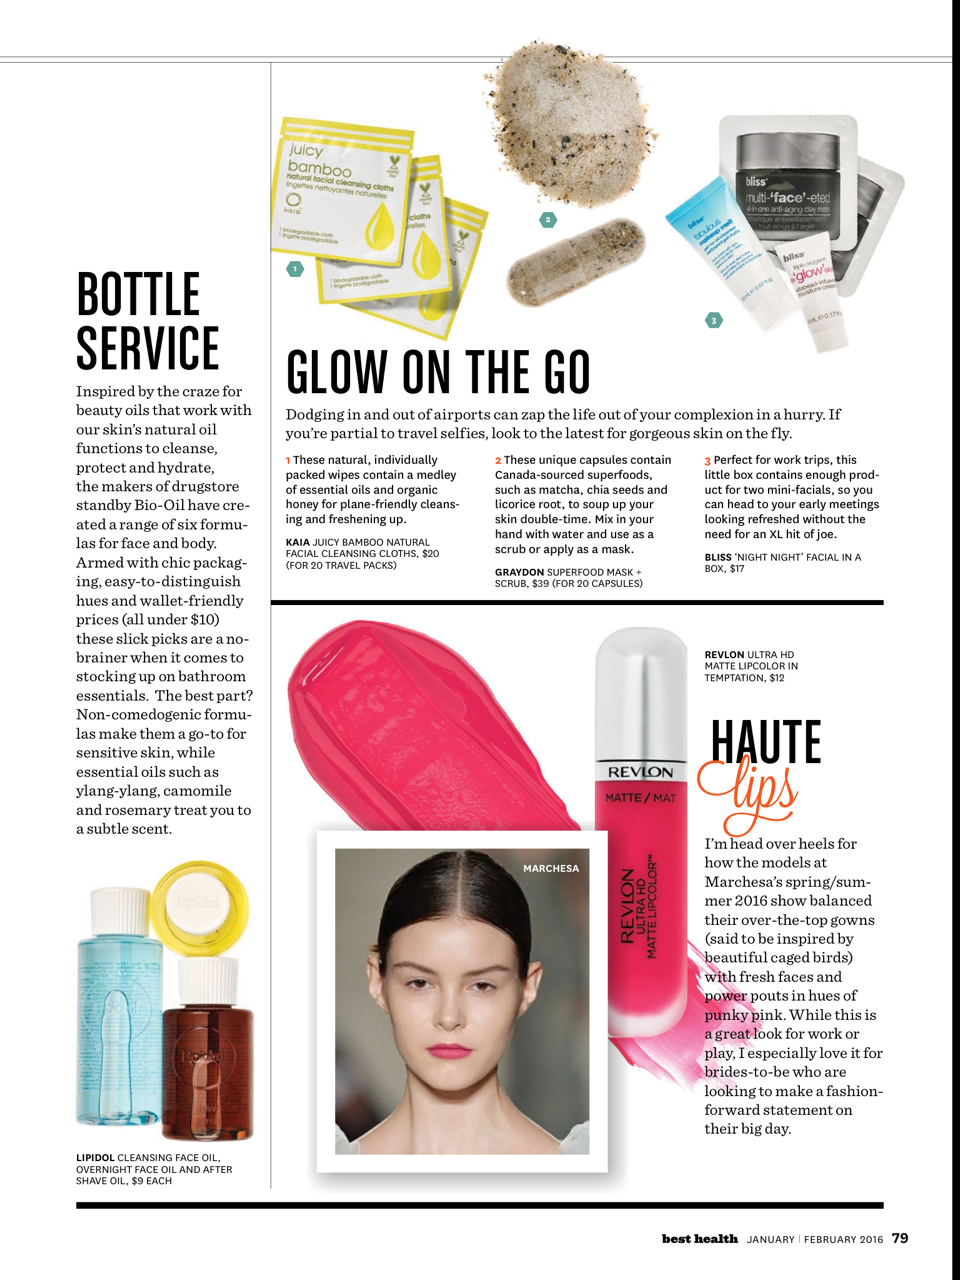 Our Superfood Mask + Scrub in Best Health! Product